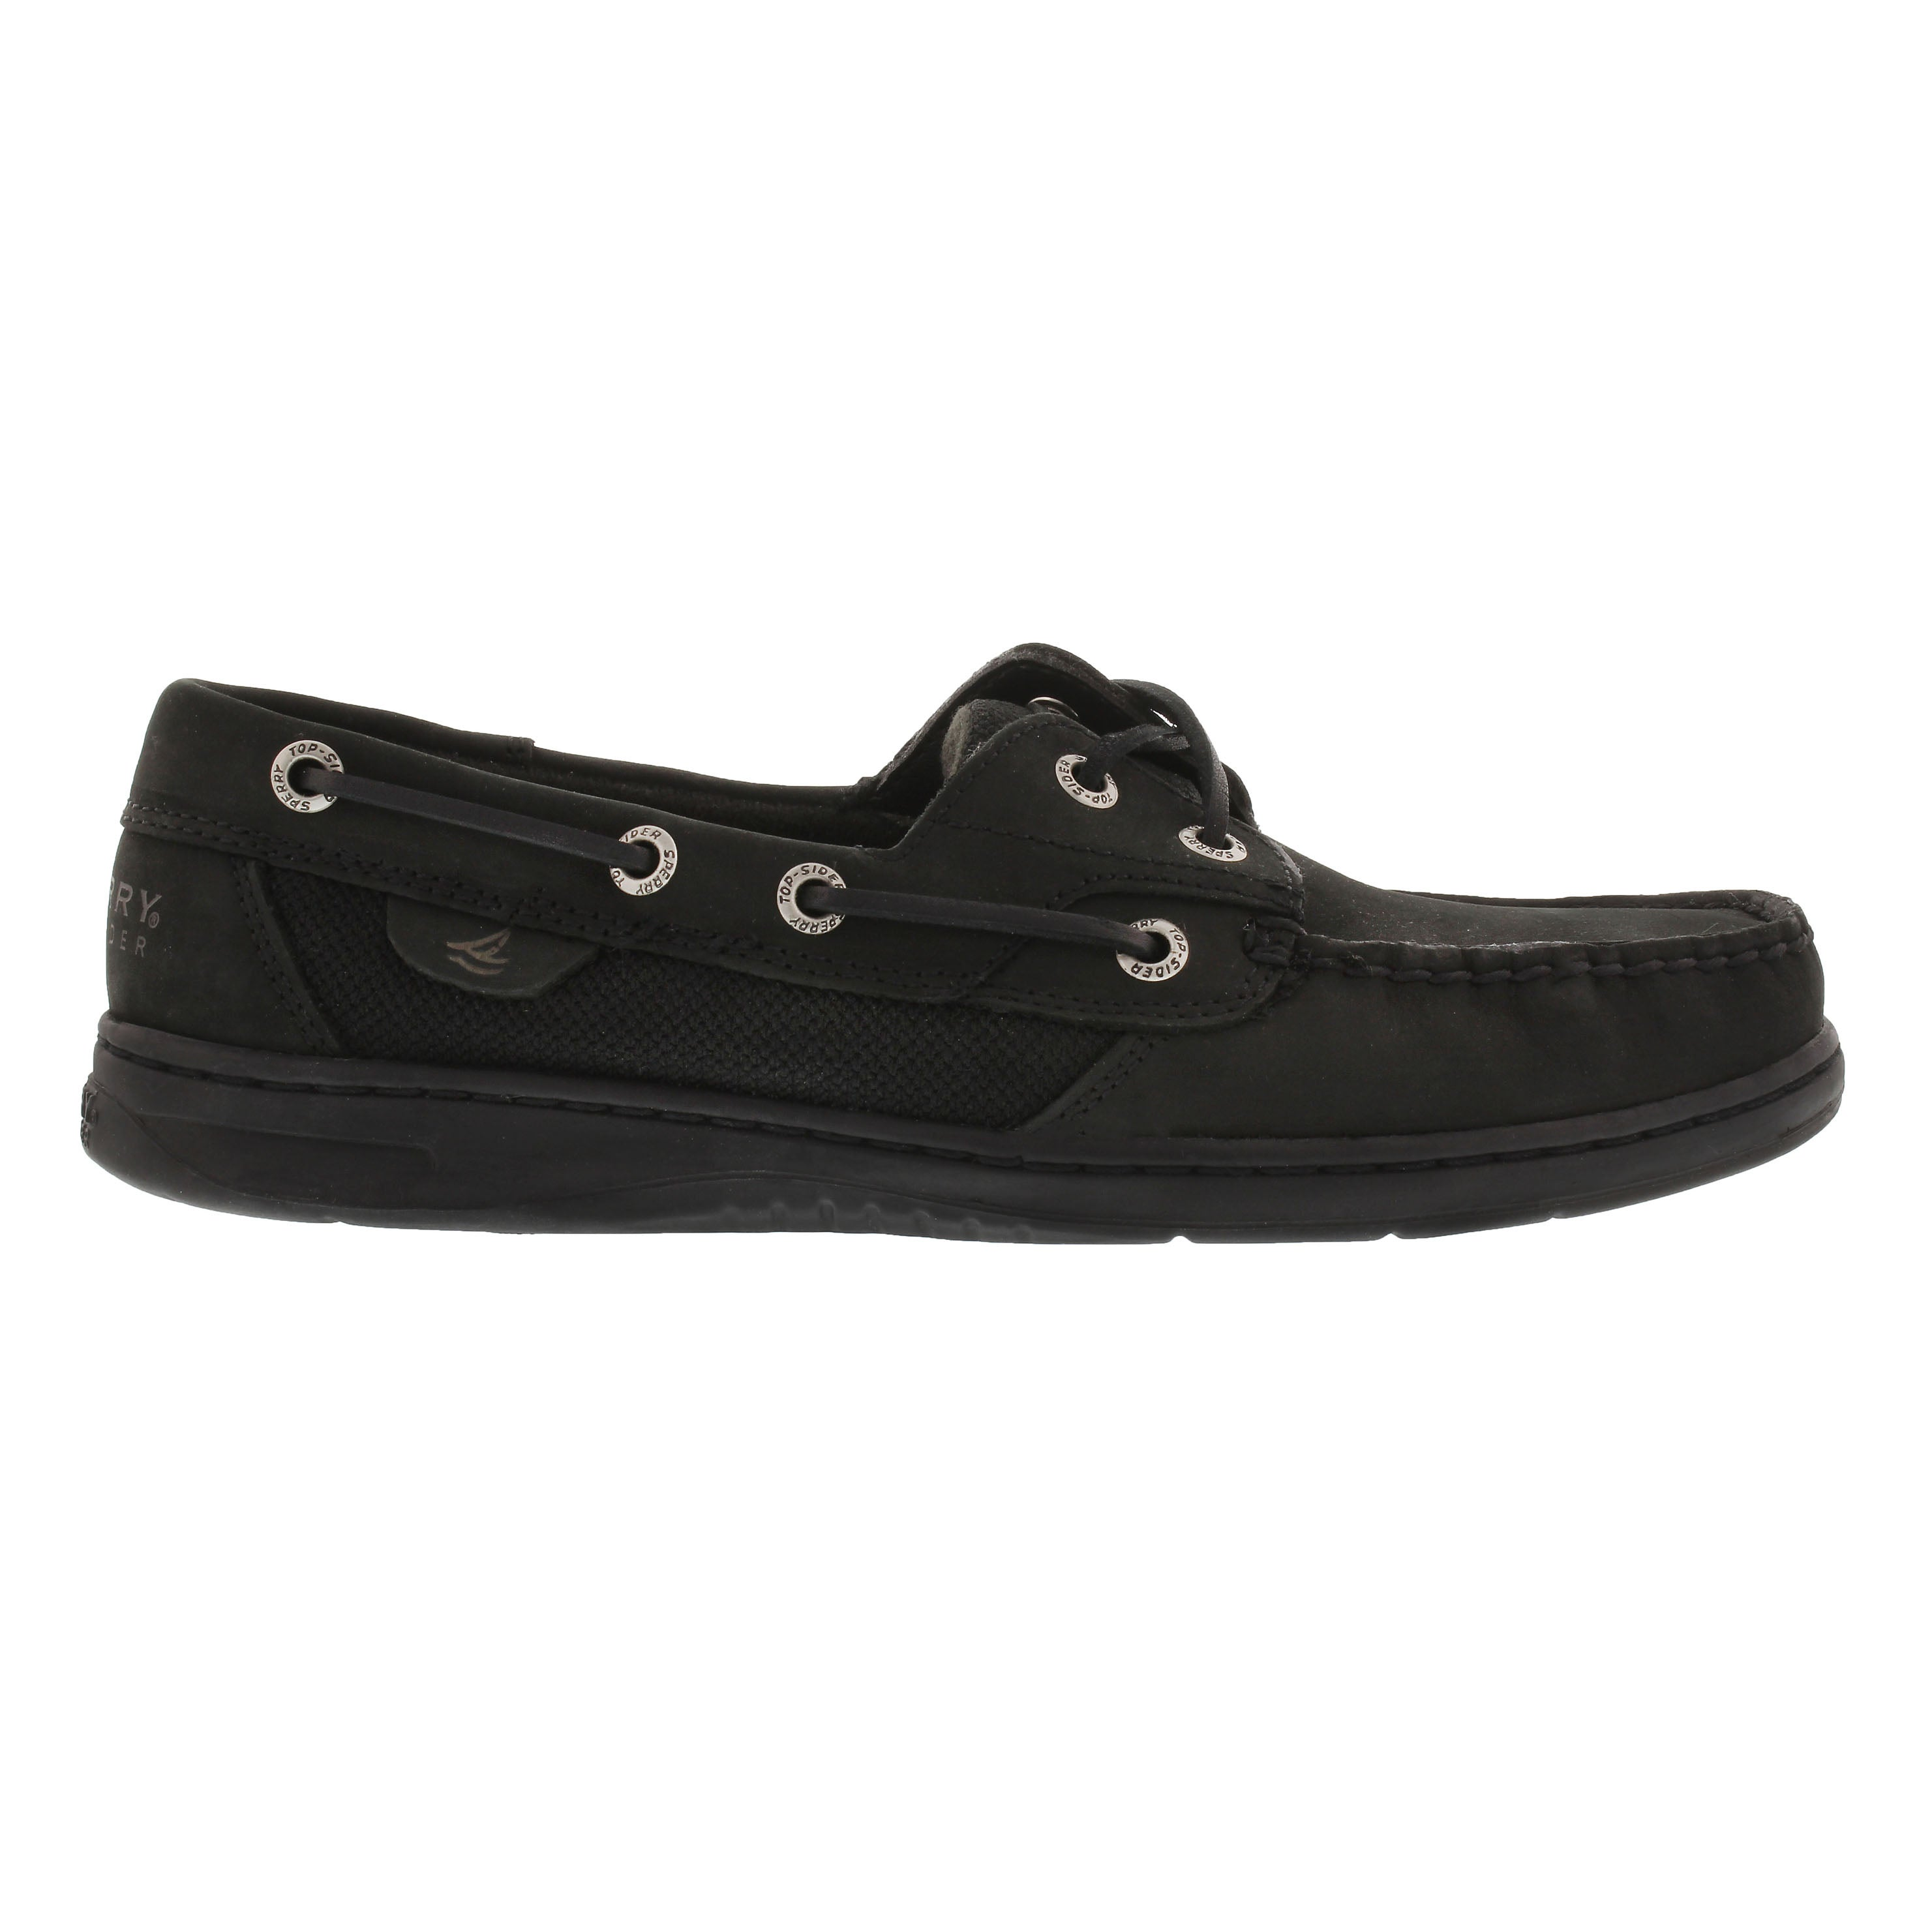 Lds Bluefish 2-eye black boat shoe